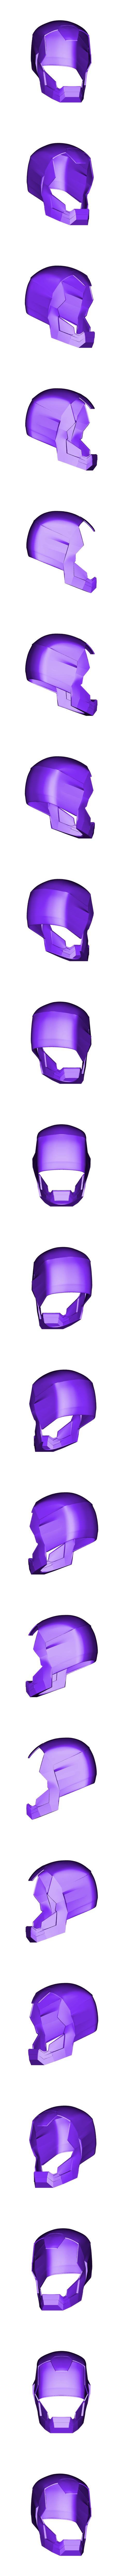 Iron_Man_Mark_46_Helmet_v3.stl Download free STL file Iron Man Mark 46 Helmet (Captain America Civil War) • 3D printing template, VillainousPropShop